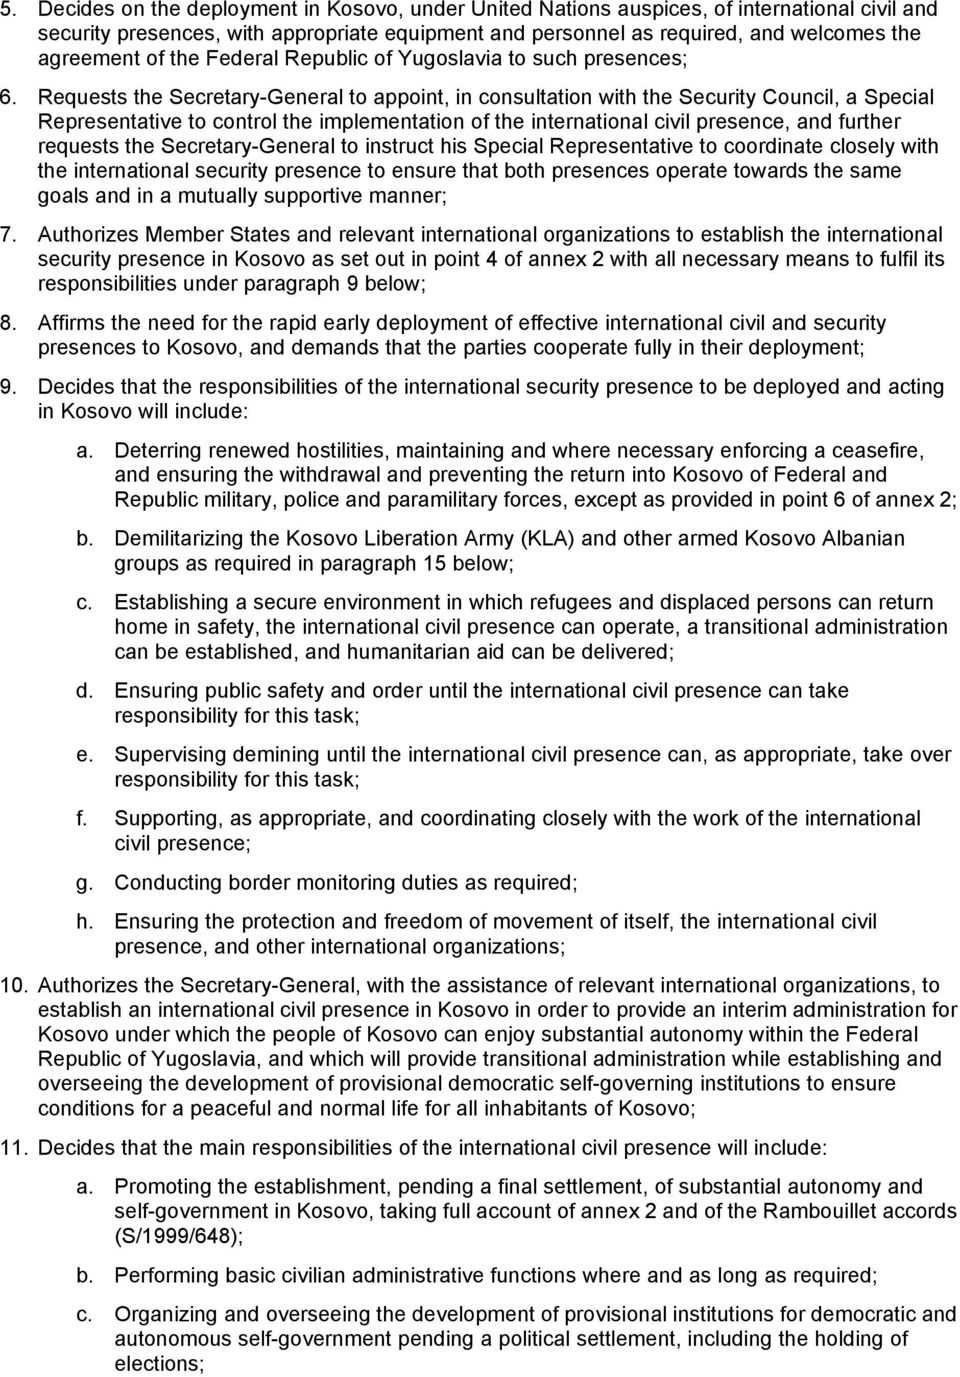 Requests the Secretary-General to appoint, in consultation with the Security Council, a Special Representative to control the implementation of the international civil presence, and further requests